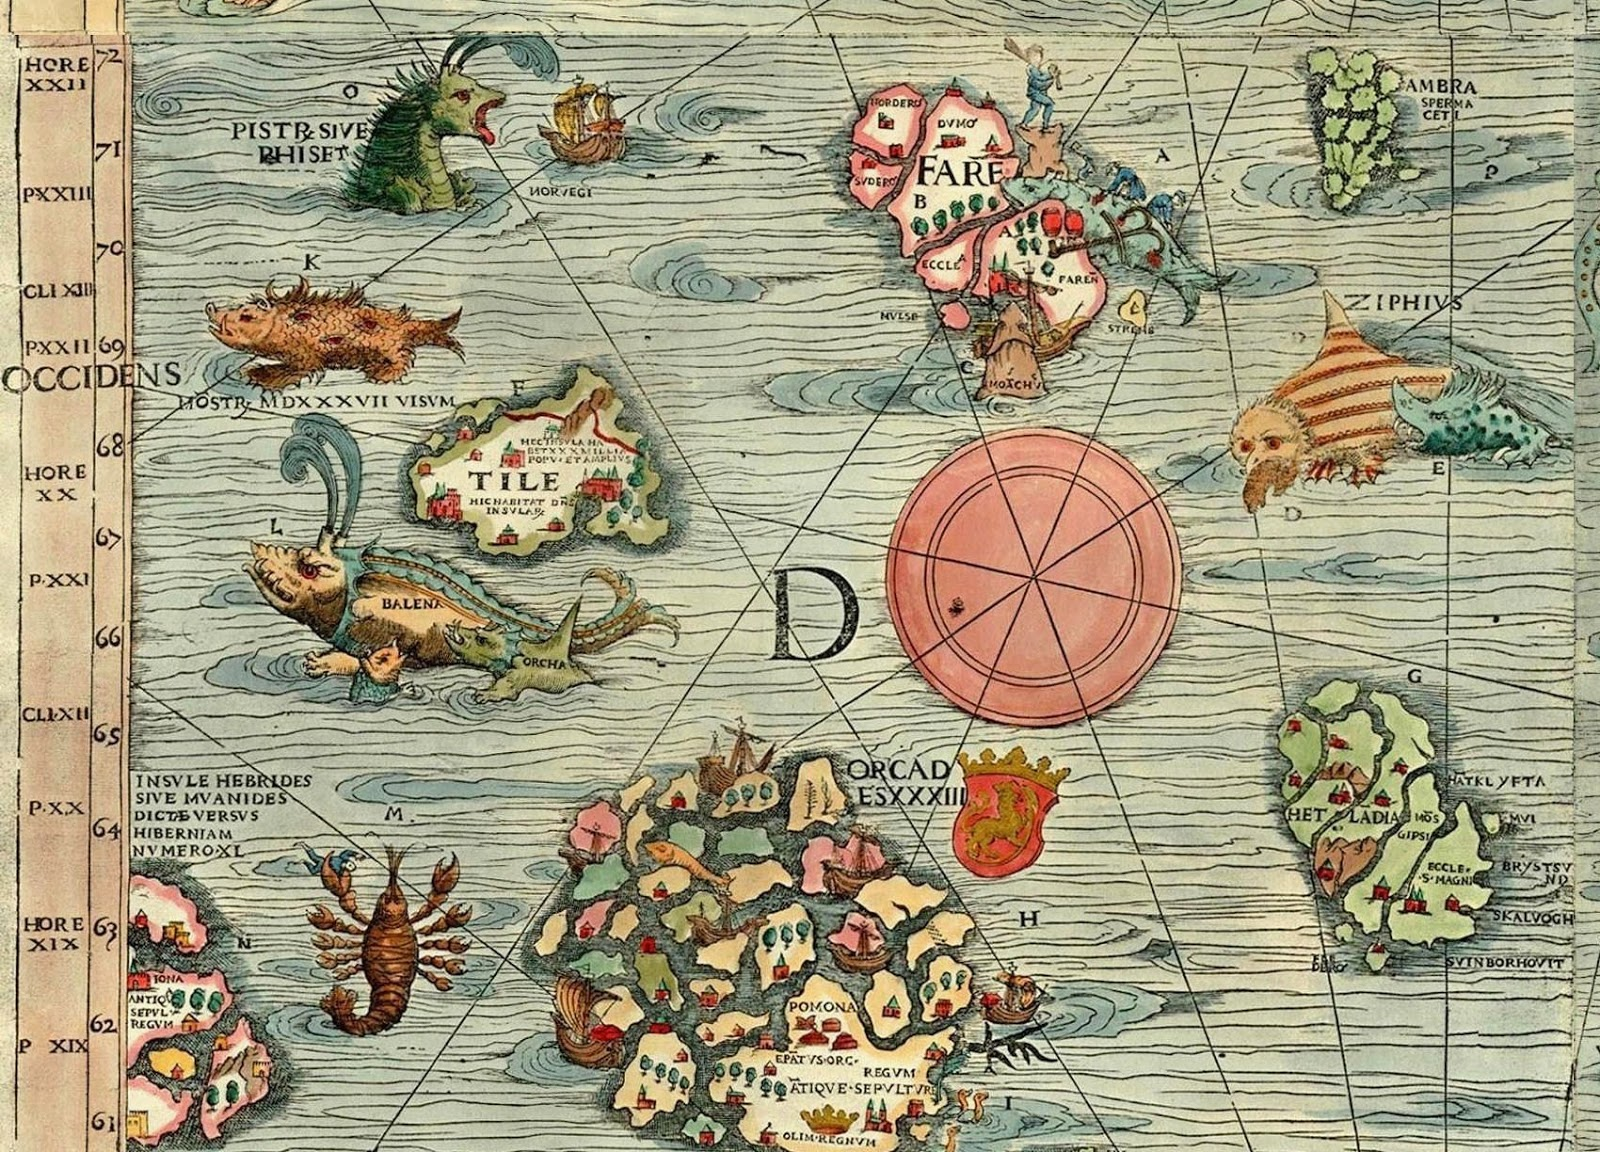 Ultima Thule Thule Tile in the Carta Marina by Olaus Magnus